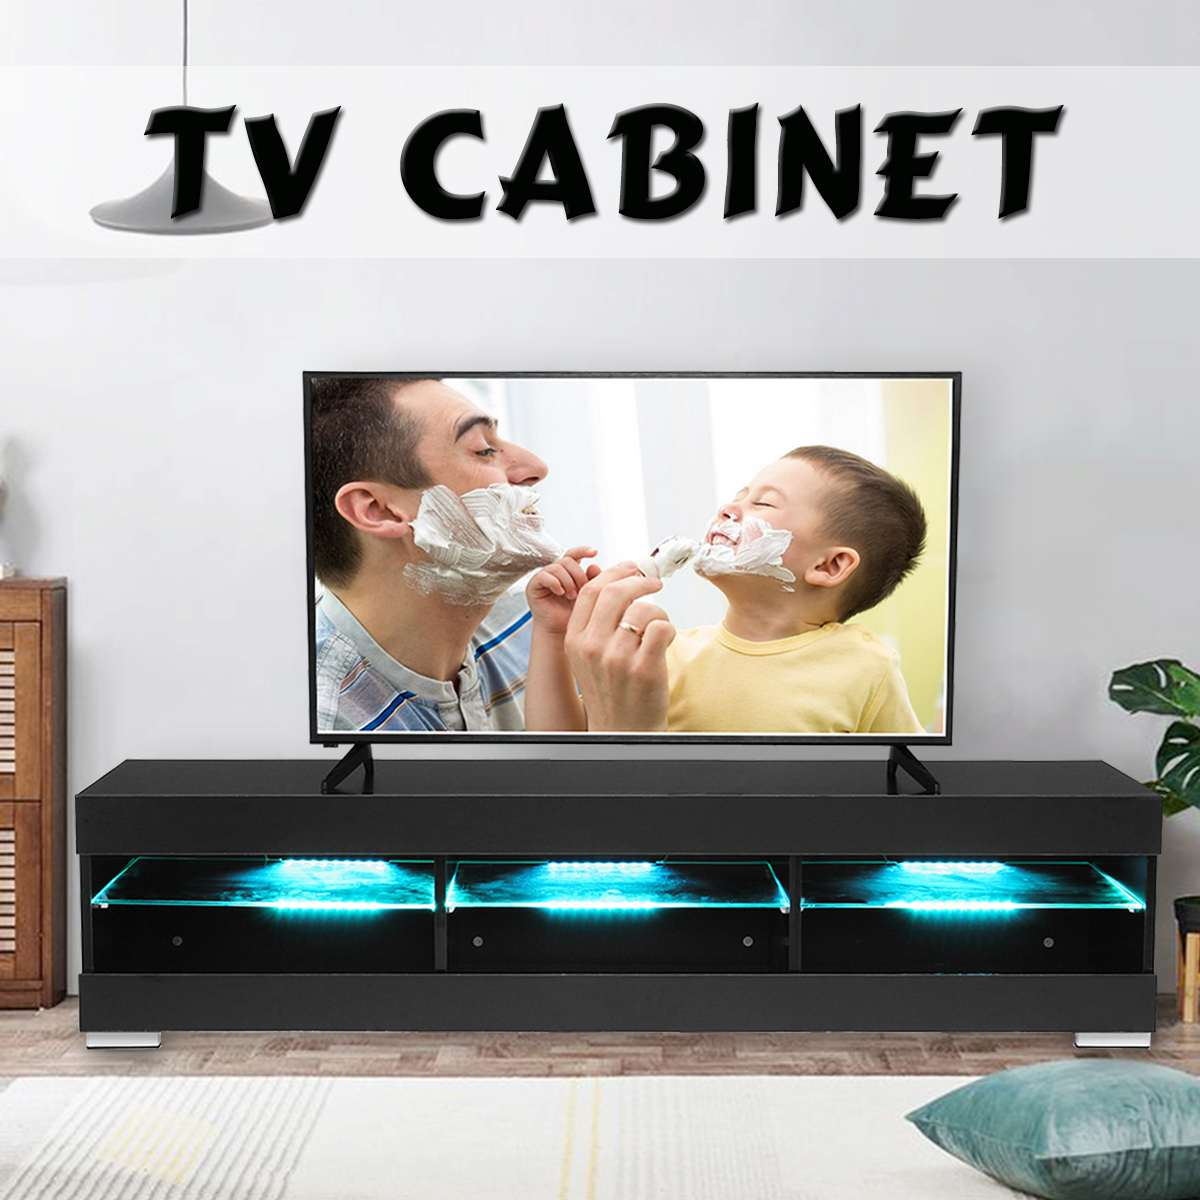 57'' TV Unit Cabinet Stand LED Light High Gloss White Black Wood Table  Living Room Meuble TV Bedroom Furniture Desk US Shipping